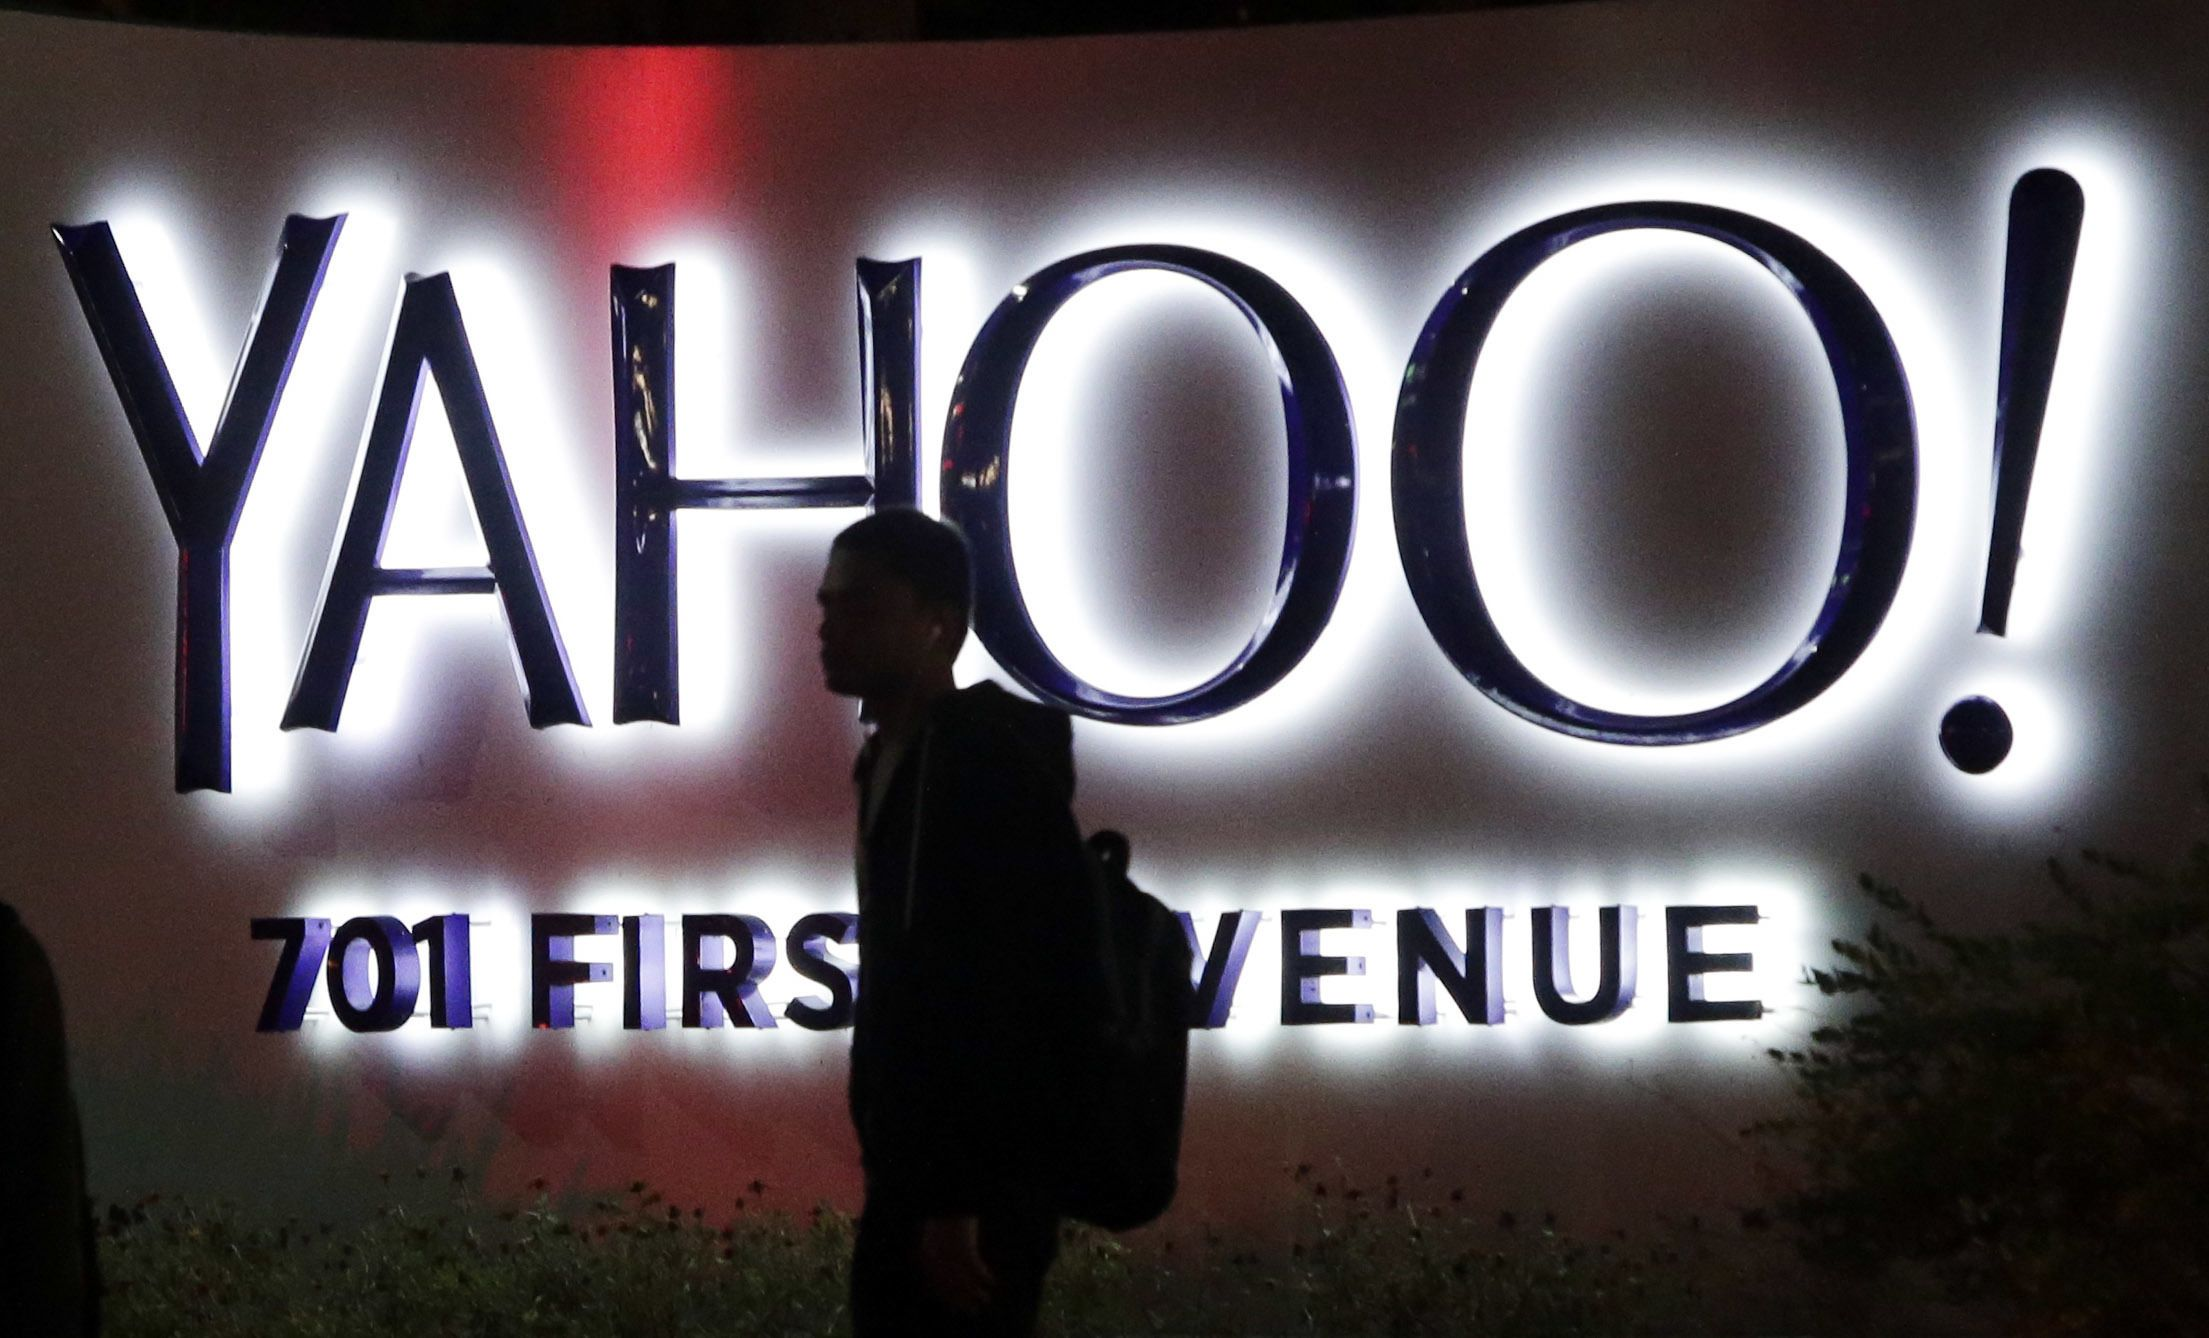 why yahoo failed